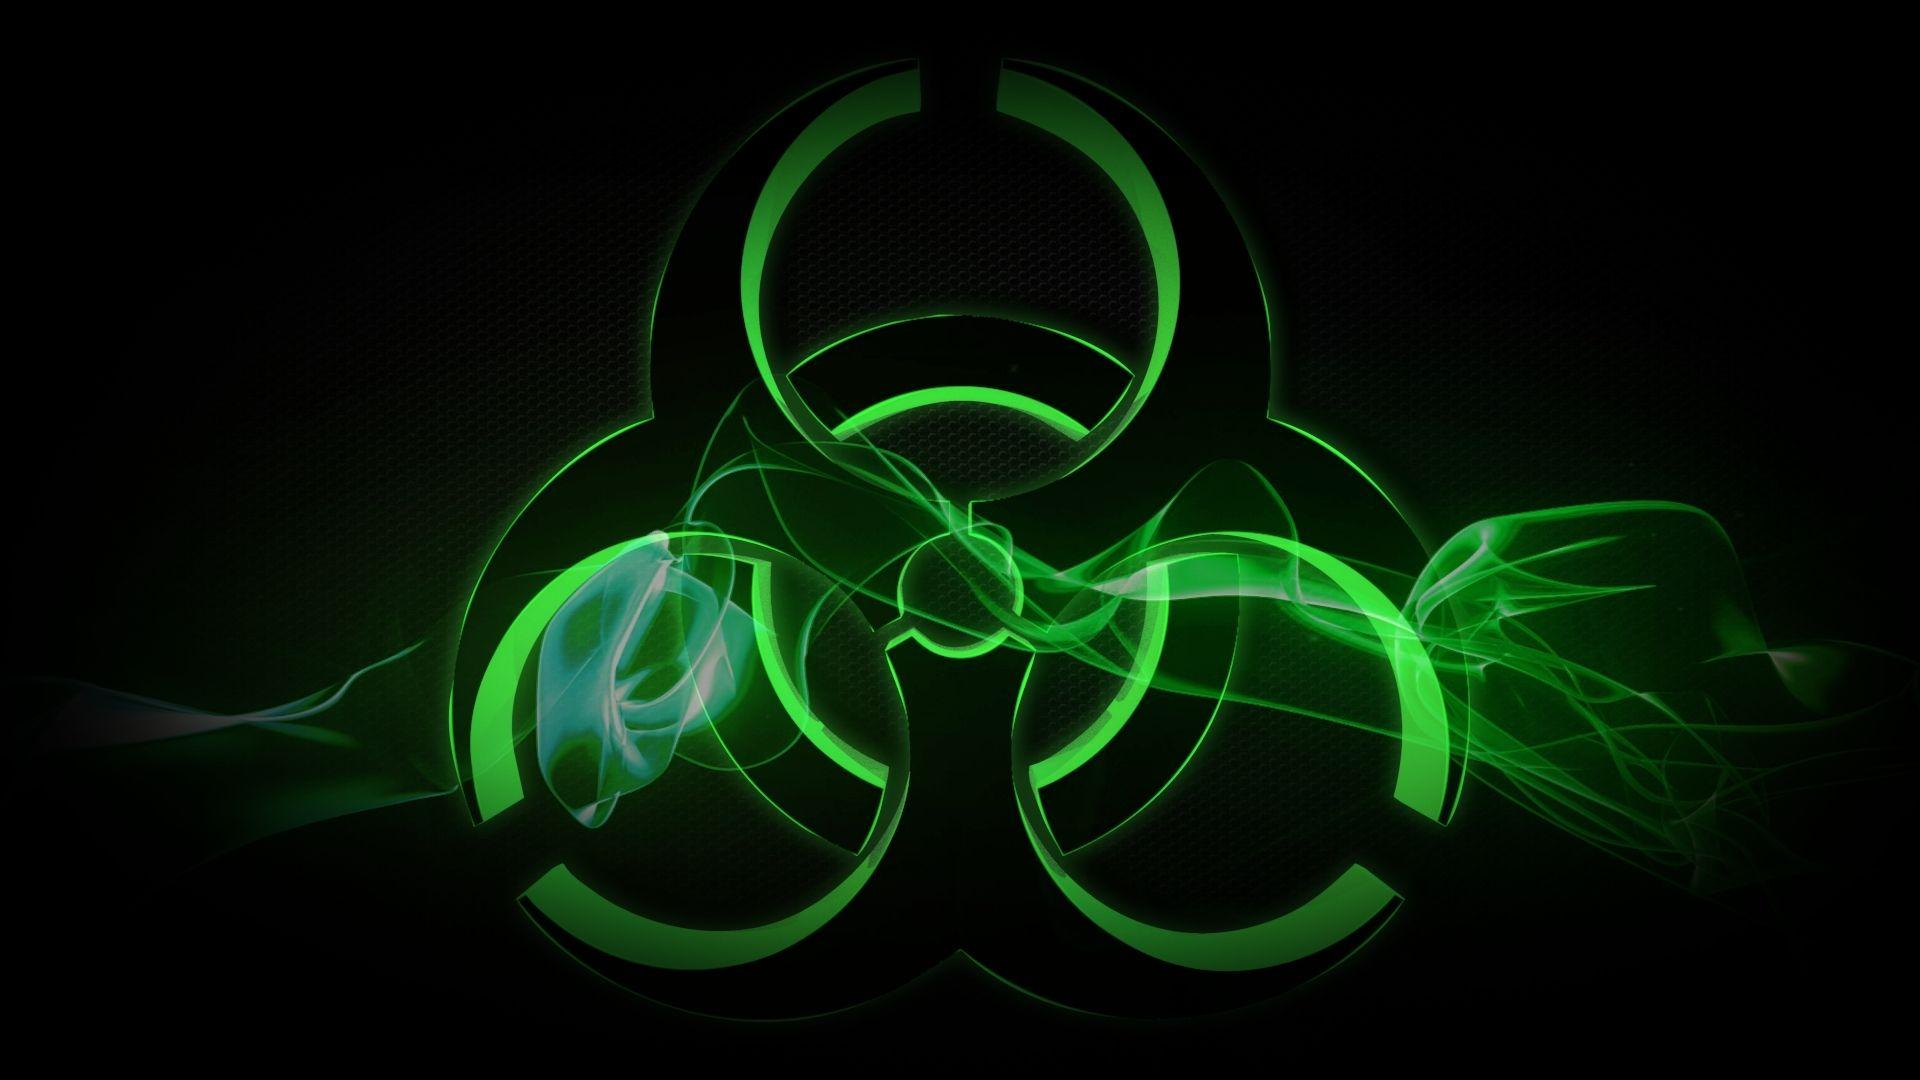 Wallpapers For > Radioactive Green Wallpaper